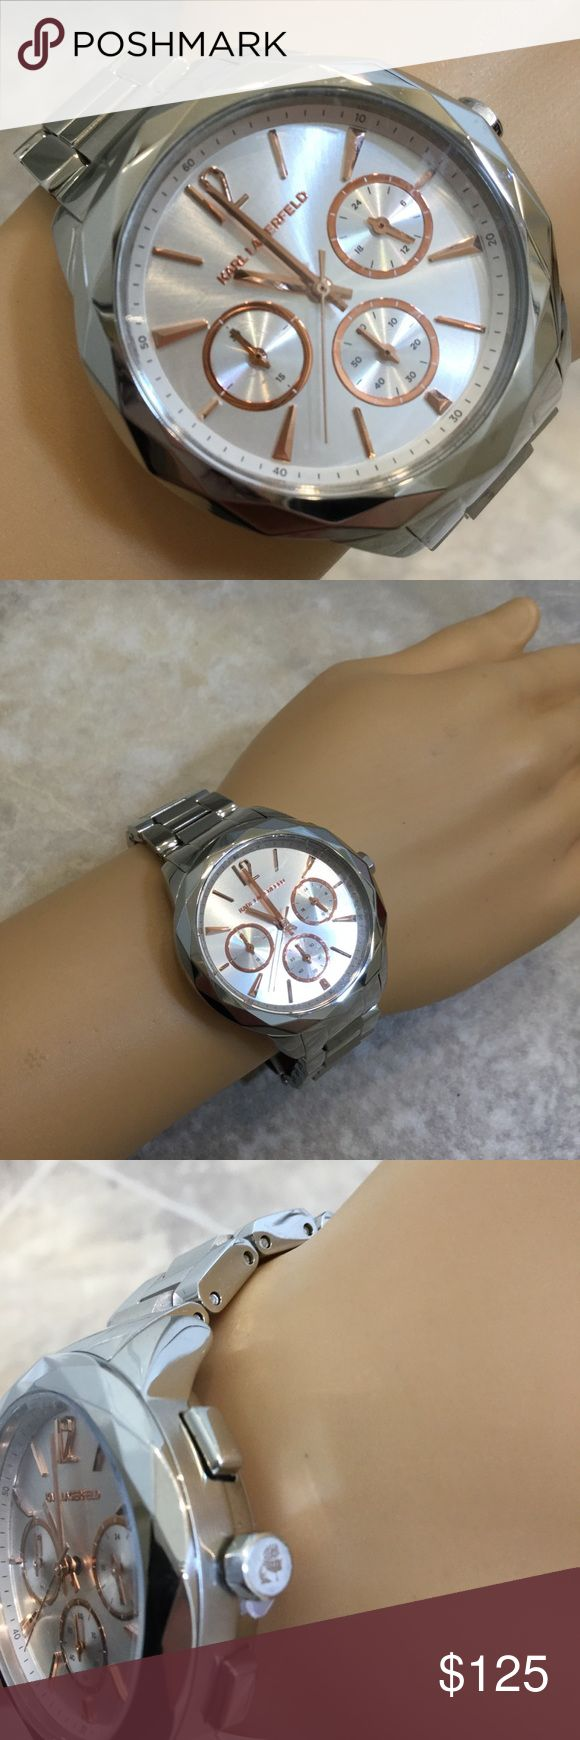 Karl Lagerfeld Watch Karl Lagerfeld silver watch with rose gold accents. Tag attached, but no box. Karl Lagerfeld Accessories Watches